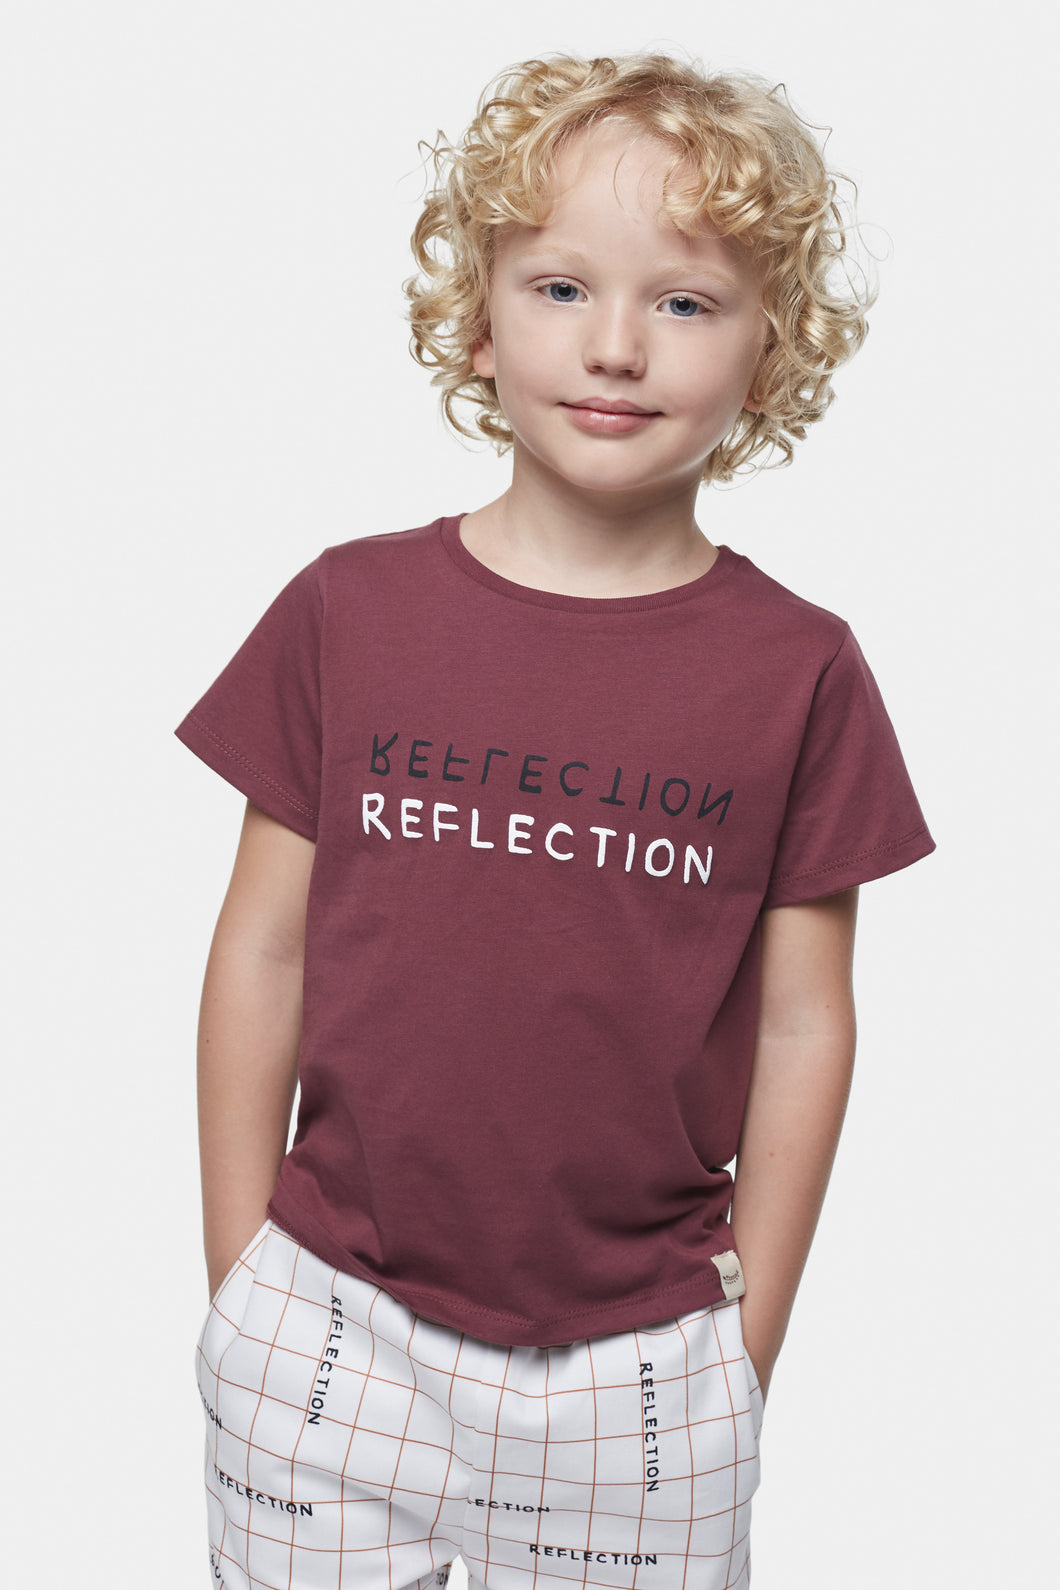 Coco Au Lait Reflection Baby T-Shirt T-Shirt Burgundy